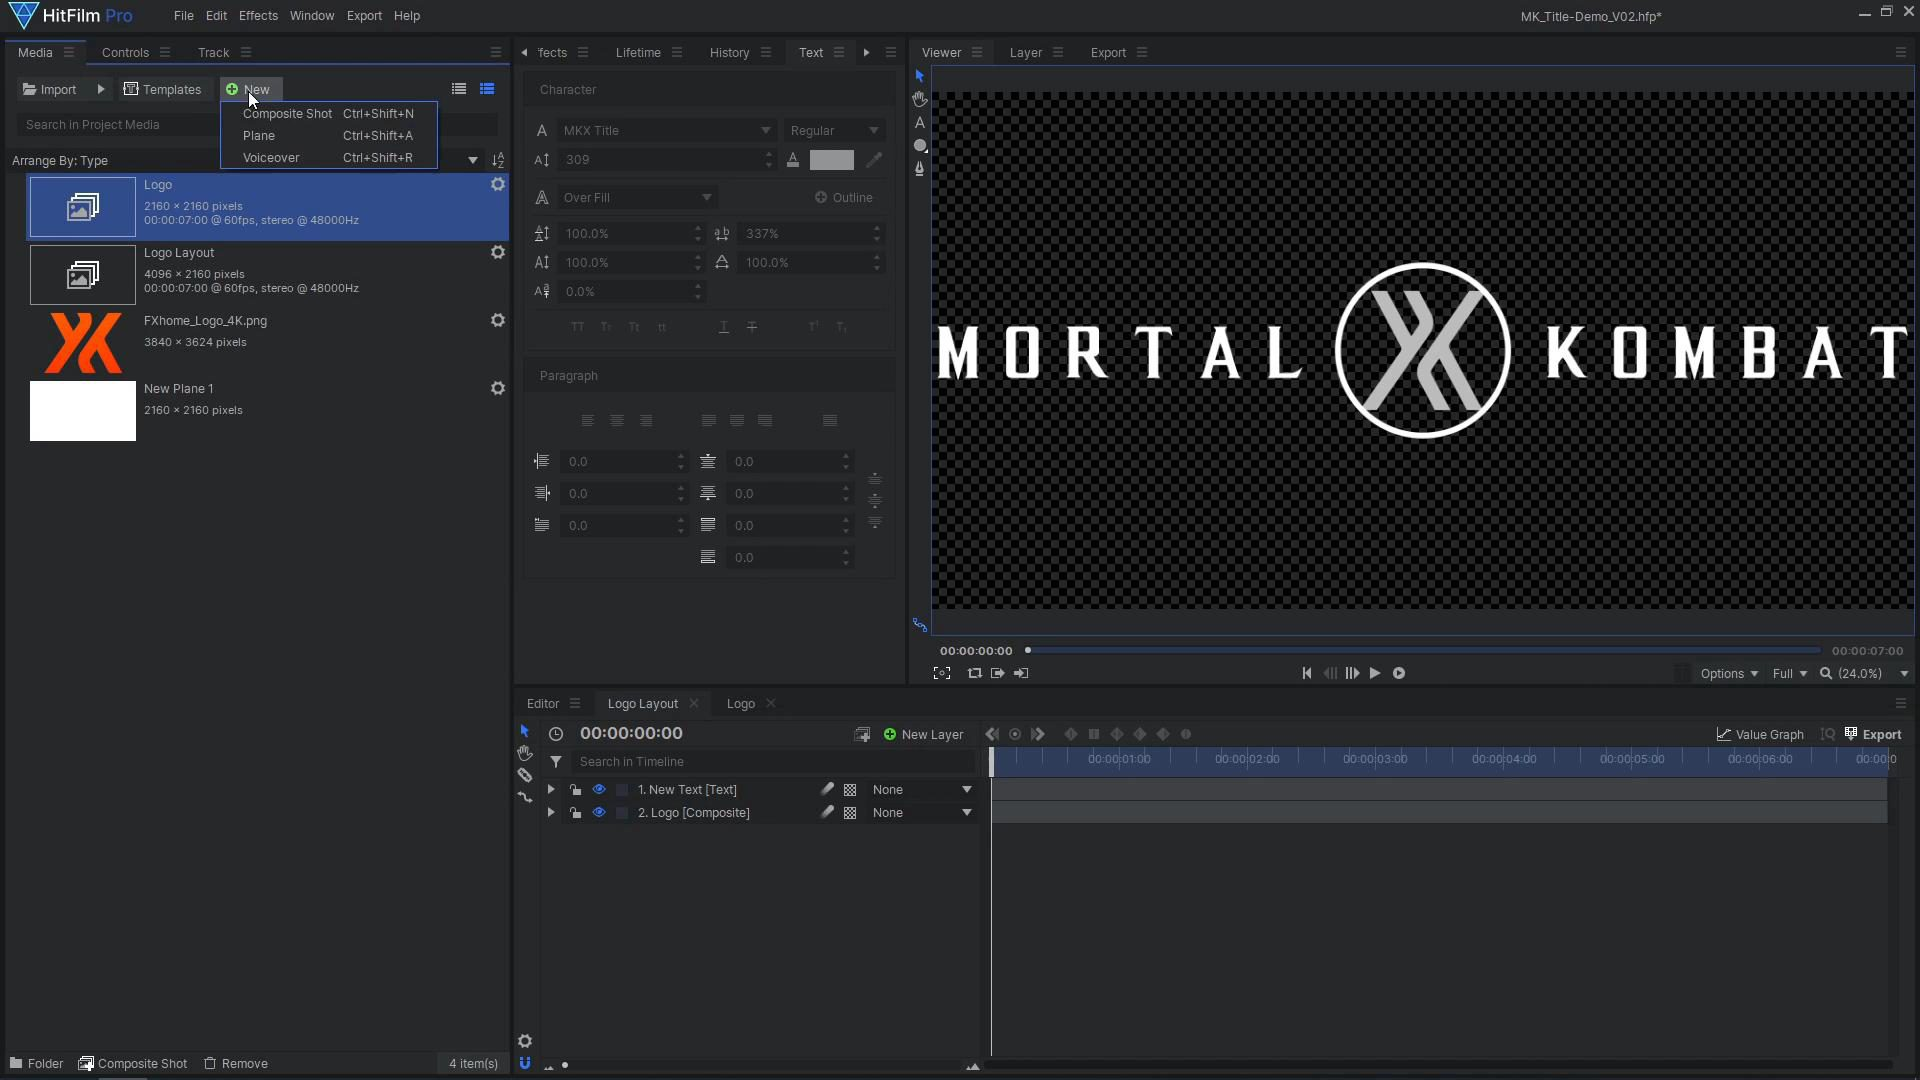 How to create a cinematic Mortal Kombat-style animated title - adding logo